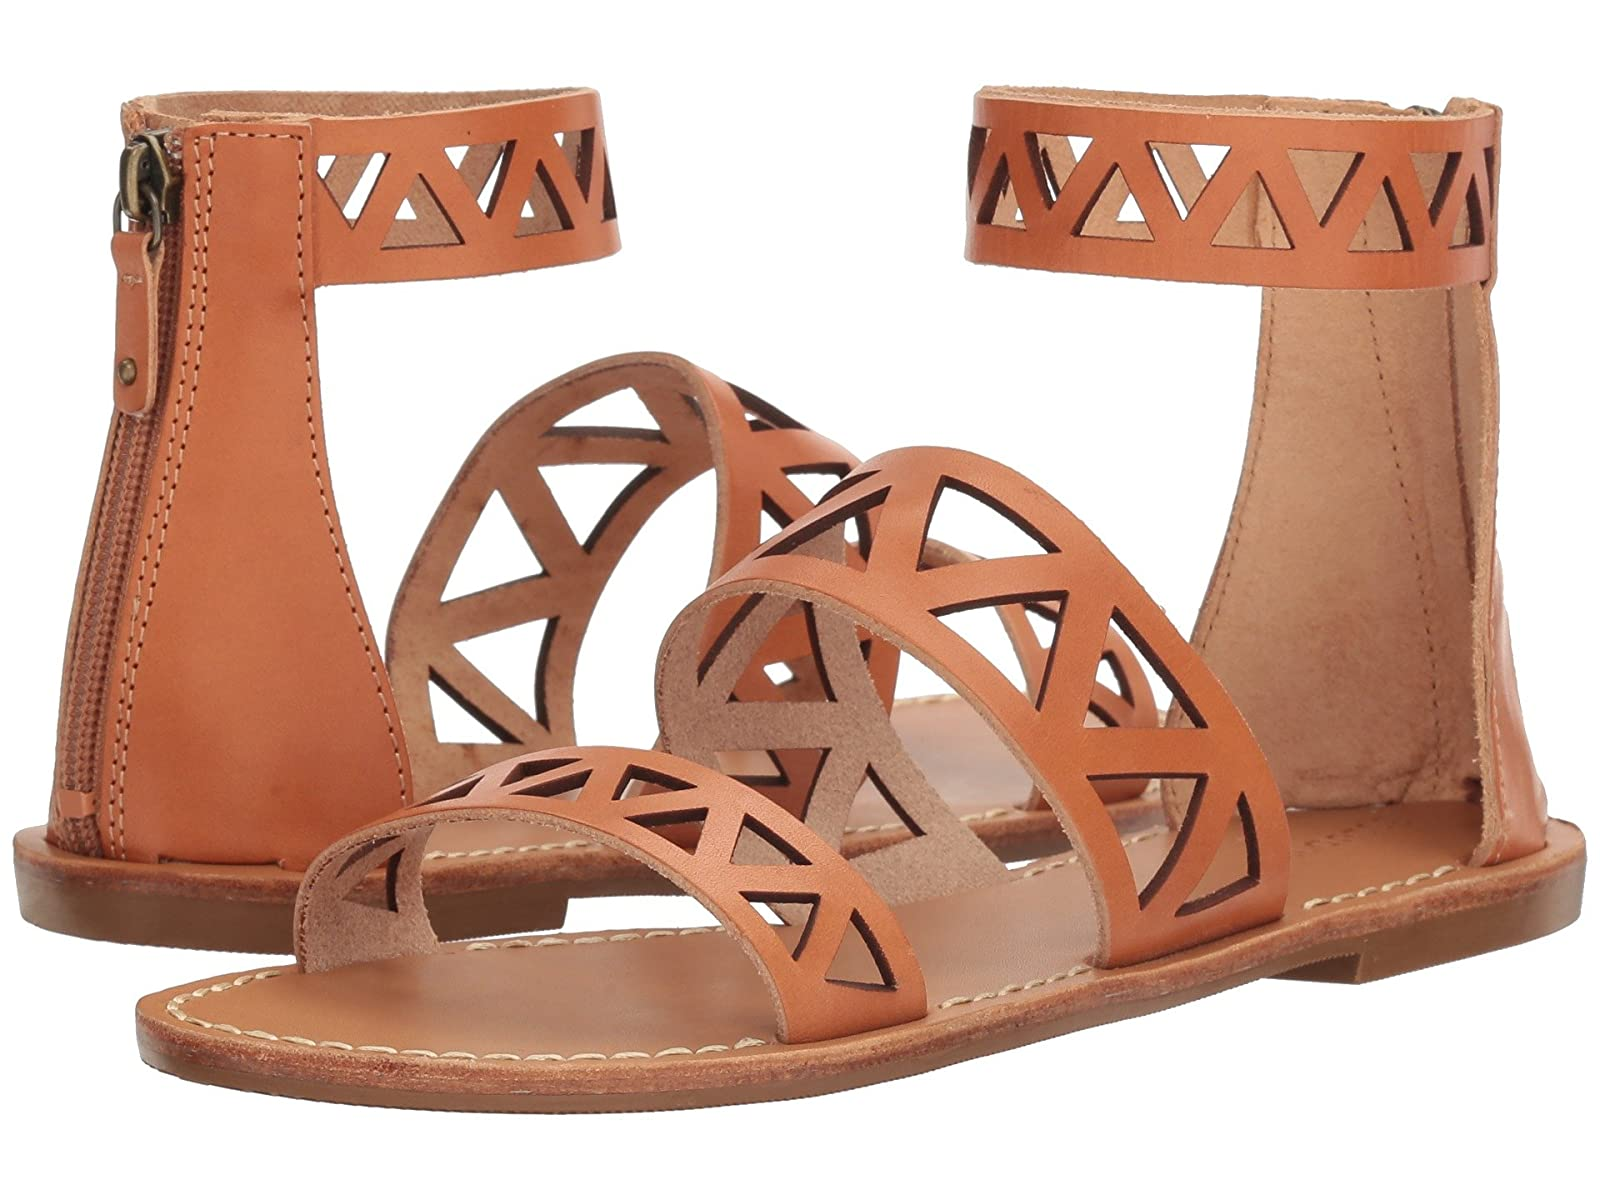 Soludos Geo Laser Cut Band SandalCheap and distinctive eye-catching shoes